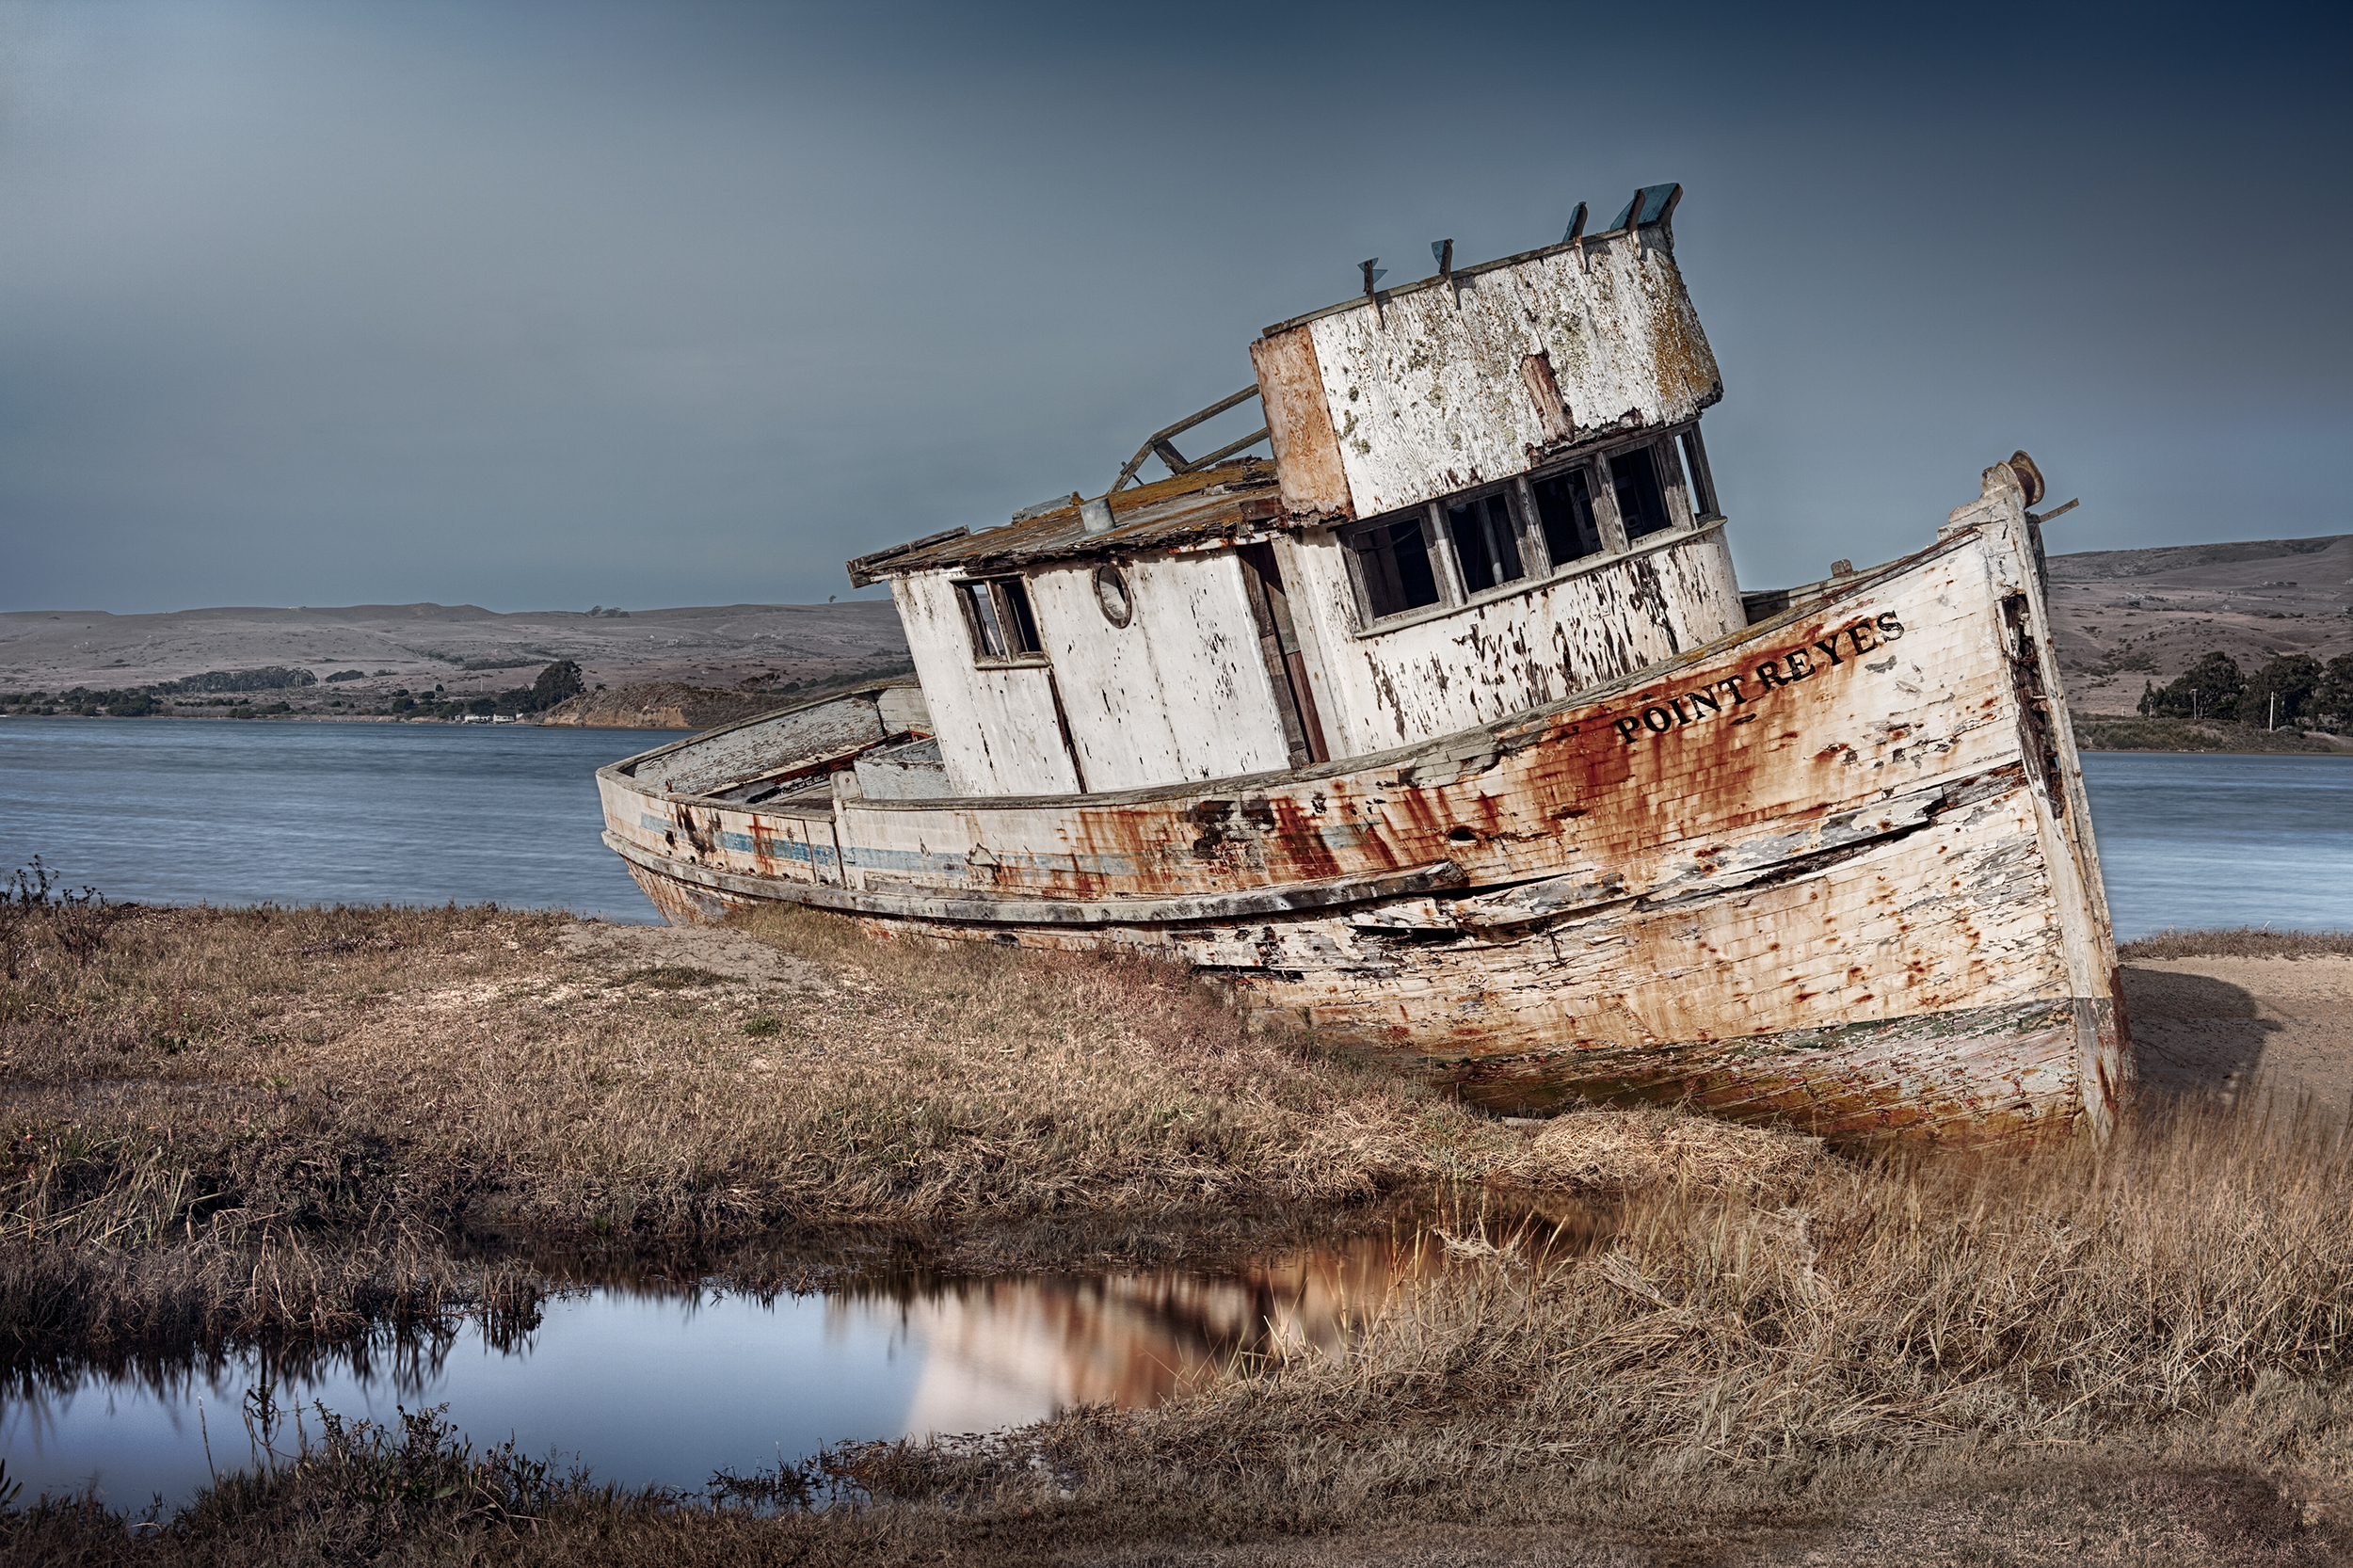 Point Reyes Shipwreck - Inverness (0059-65)